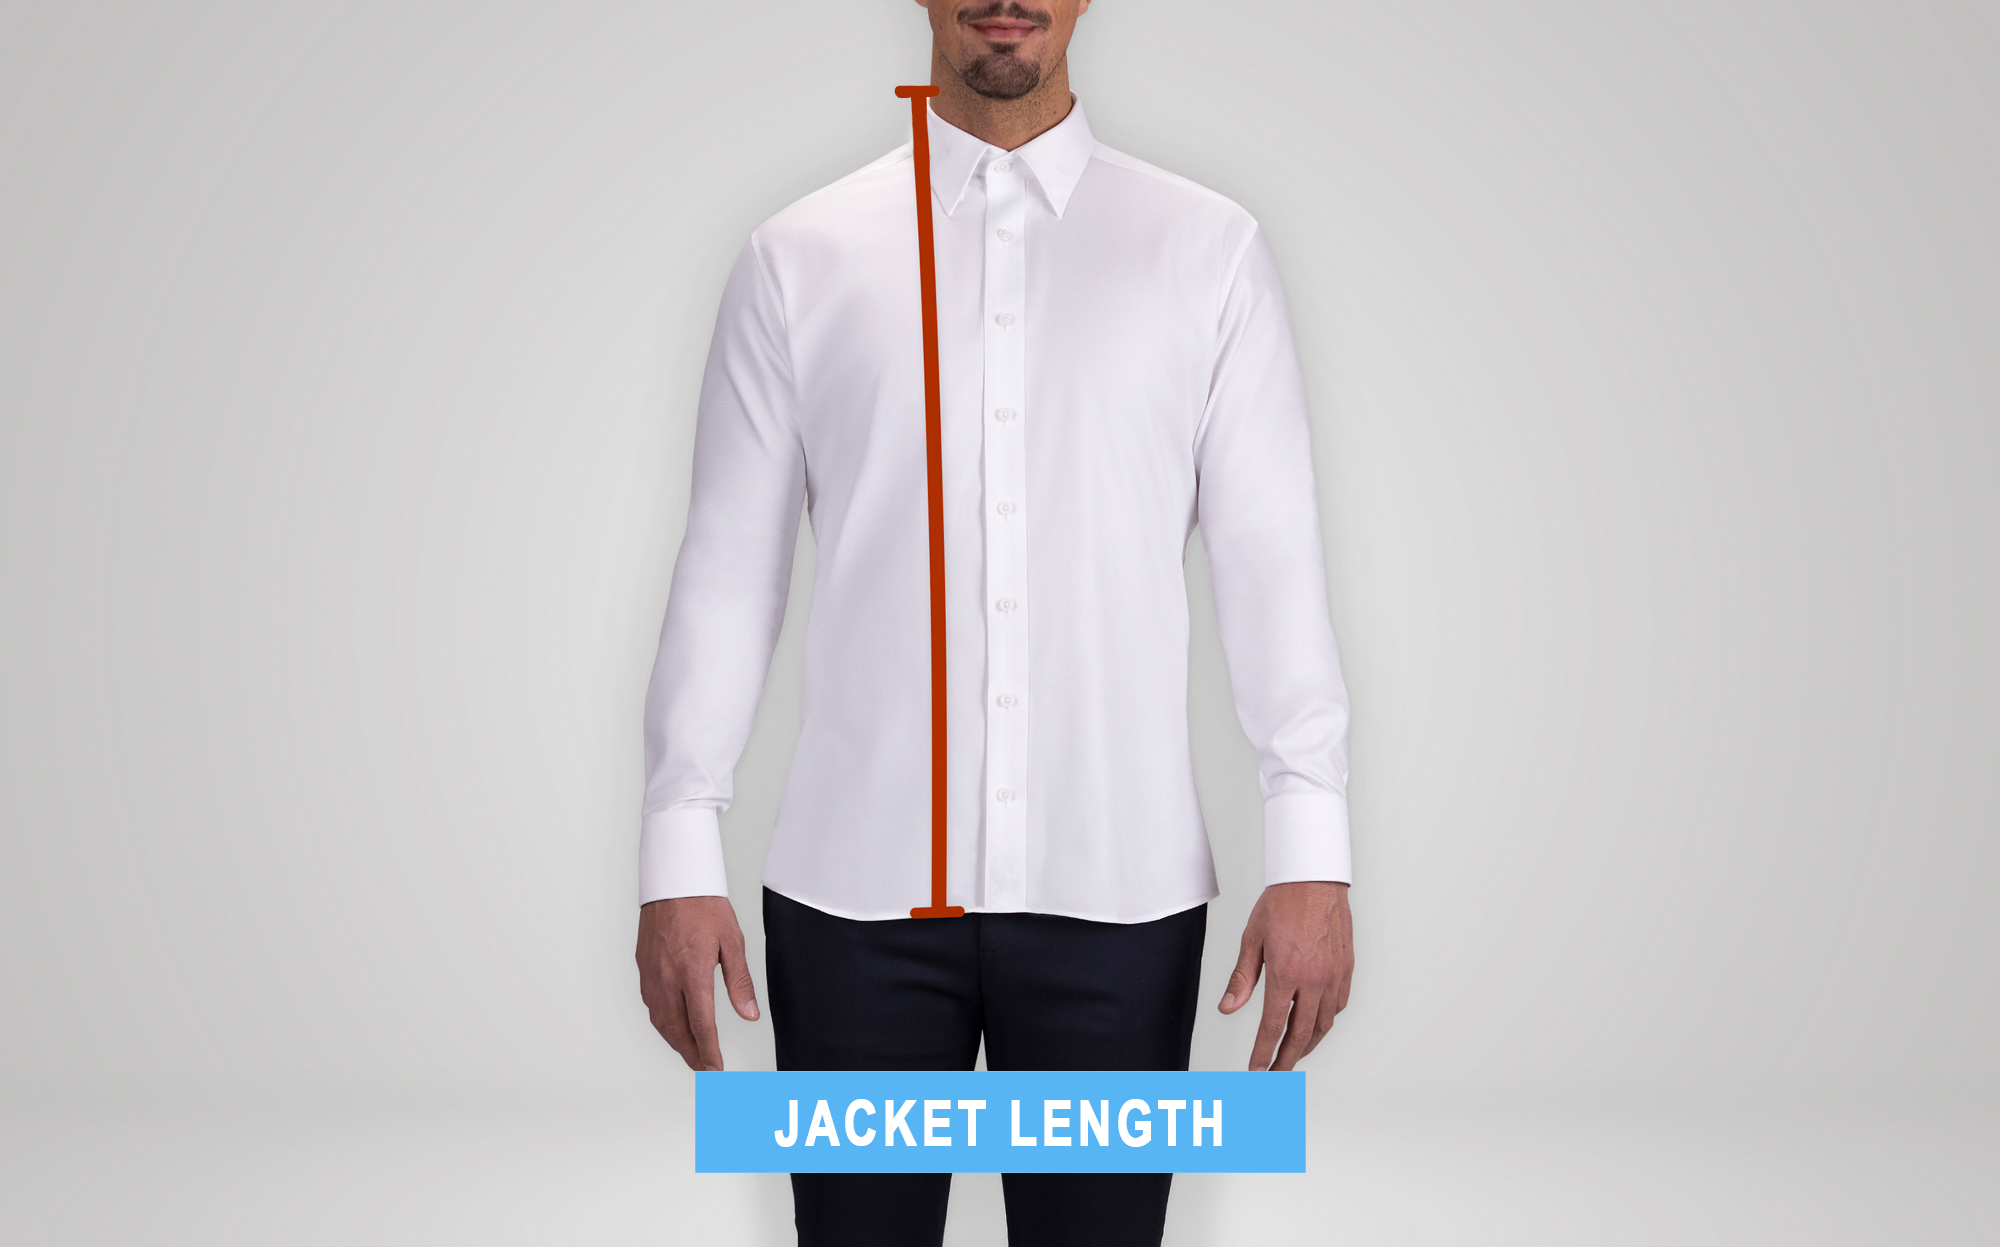 how to measure the suit's jacket length